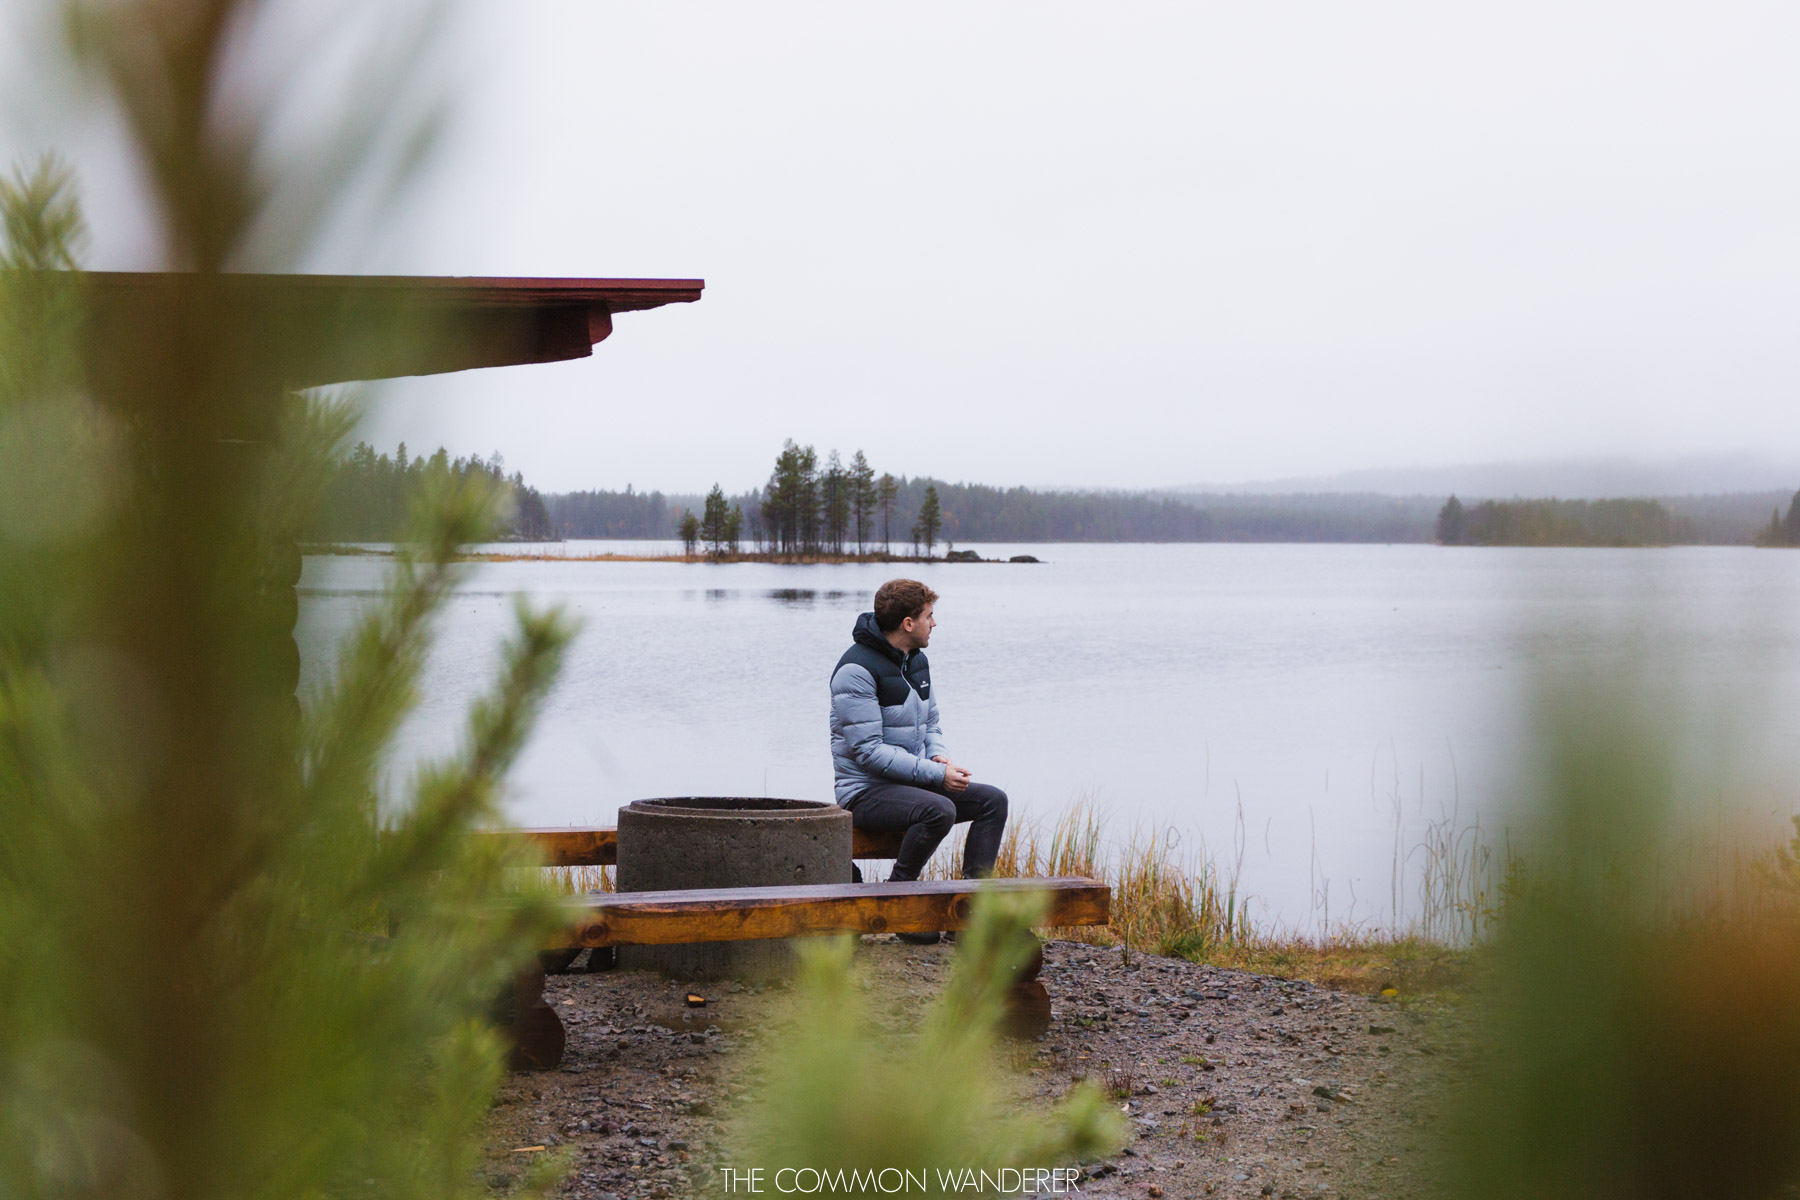 The Common Wanderer: Year in review - Swedish Lapland man by lake